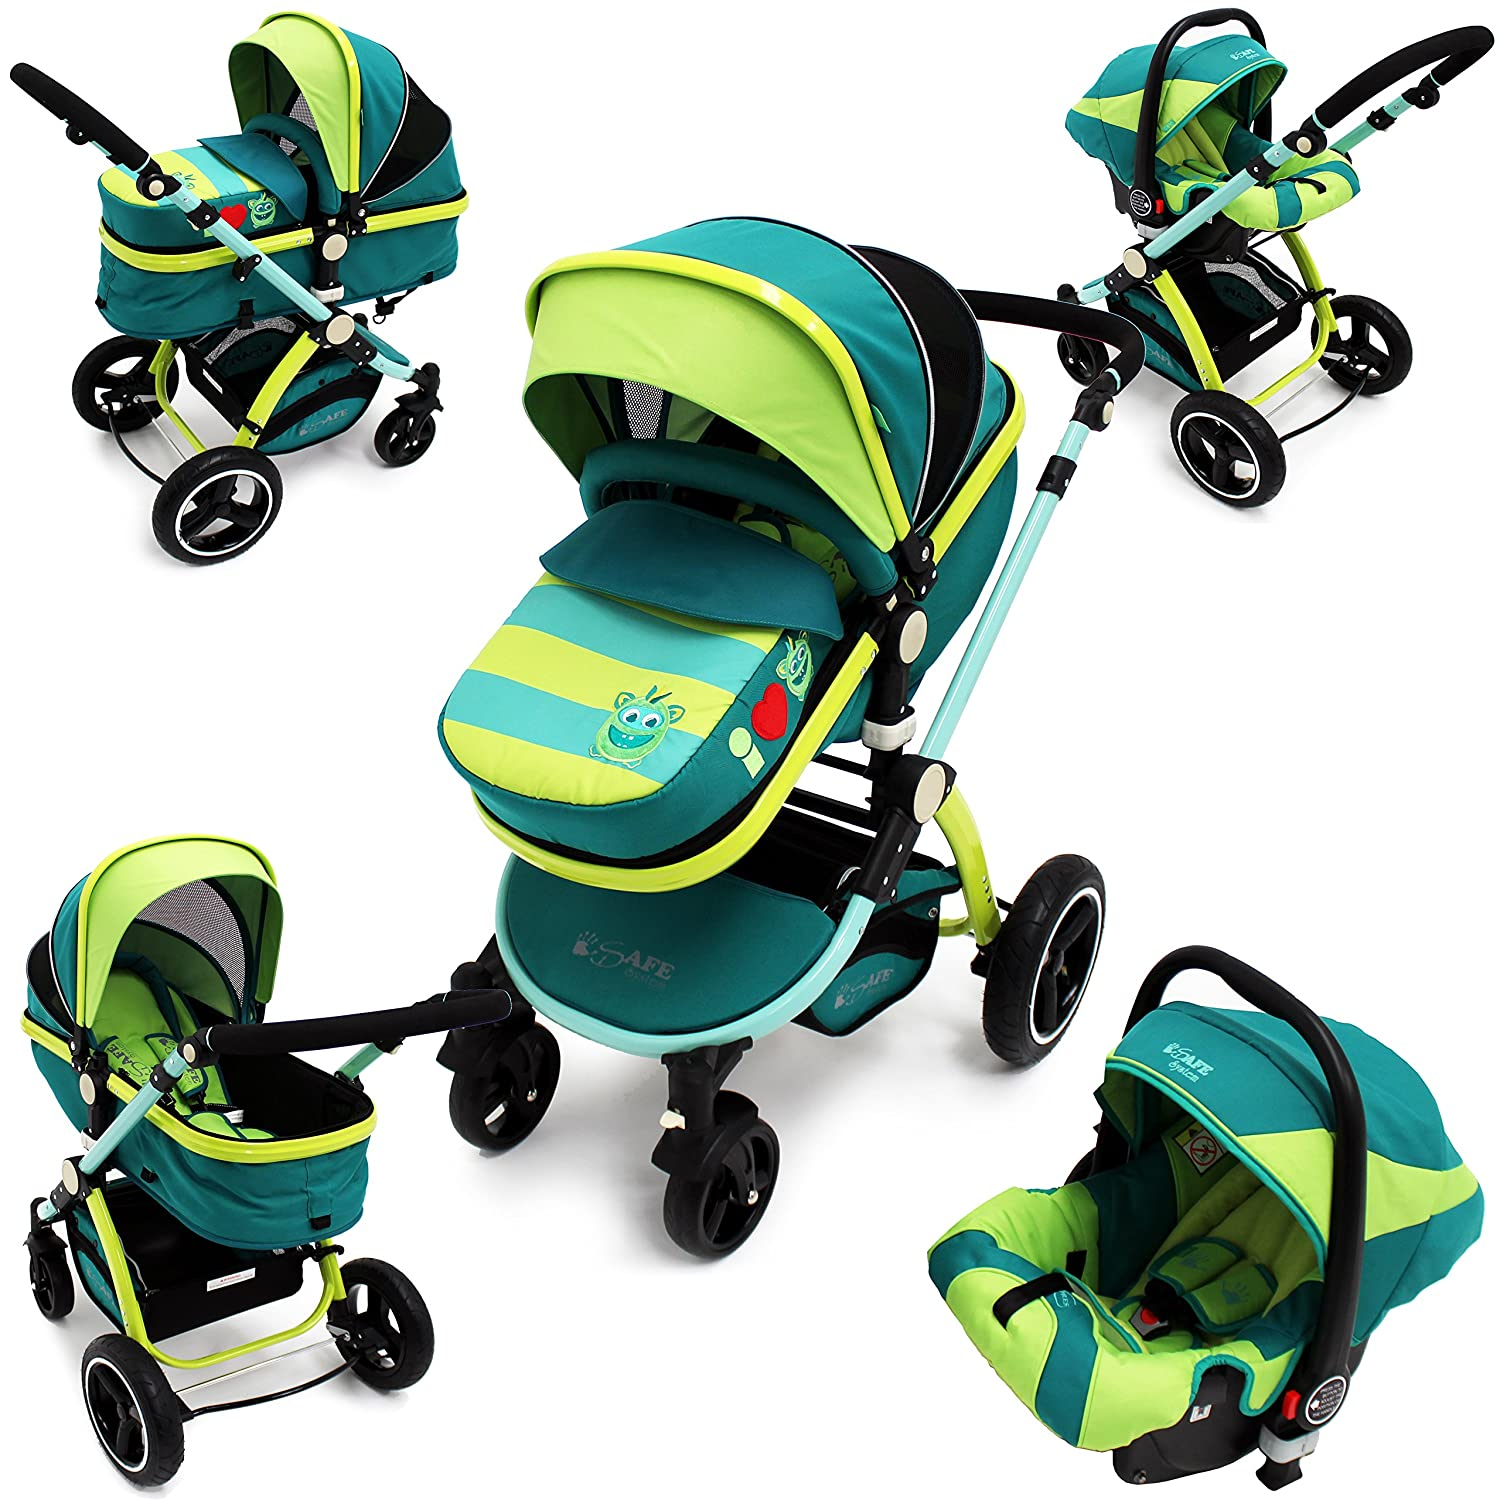 i-Safe System - Lil Friend Trio Travel System Pram & Luxury Stroller 3 in 1 Complete With Car Seat iSafe